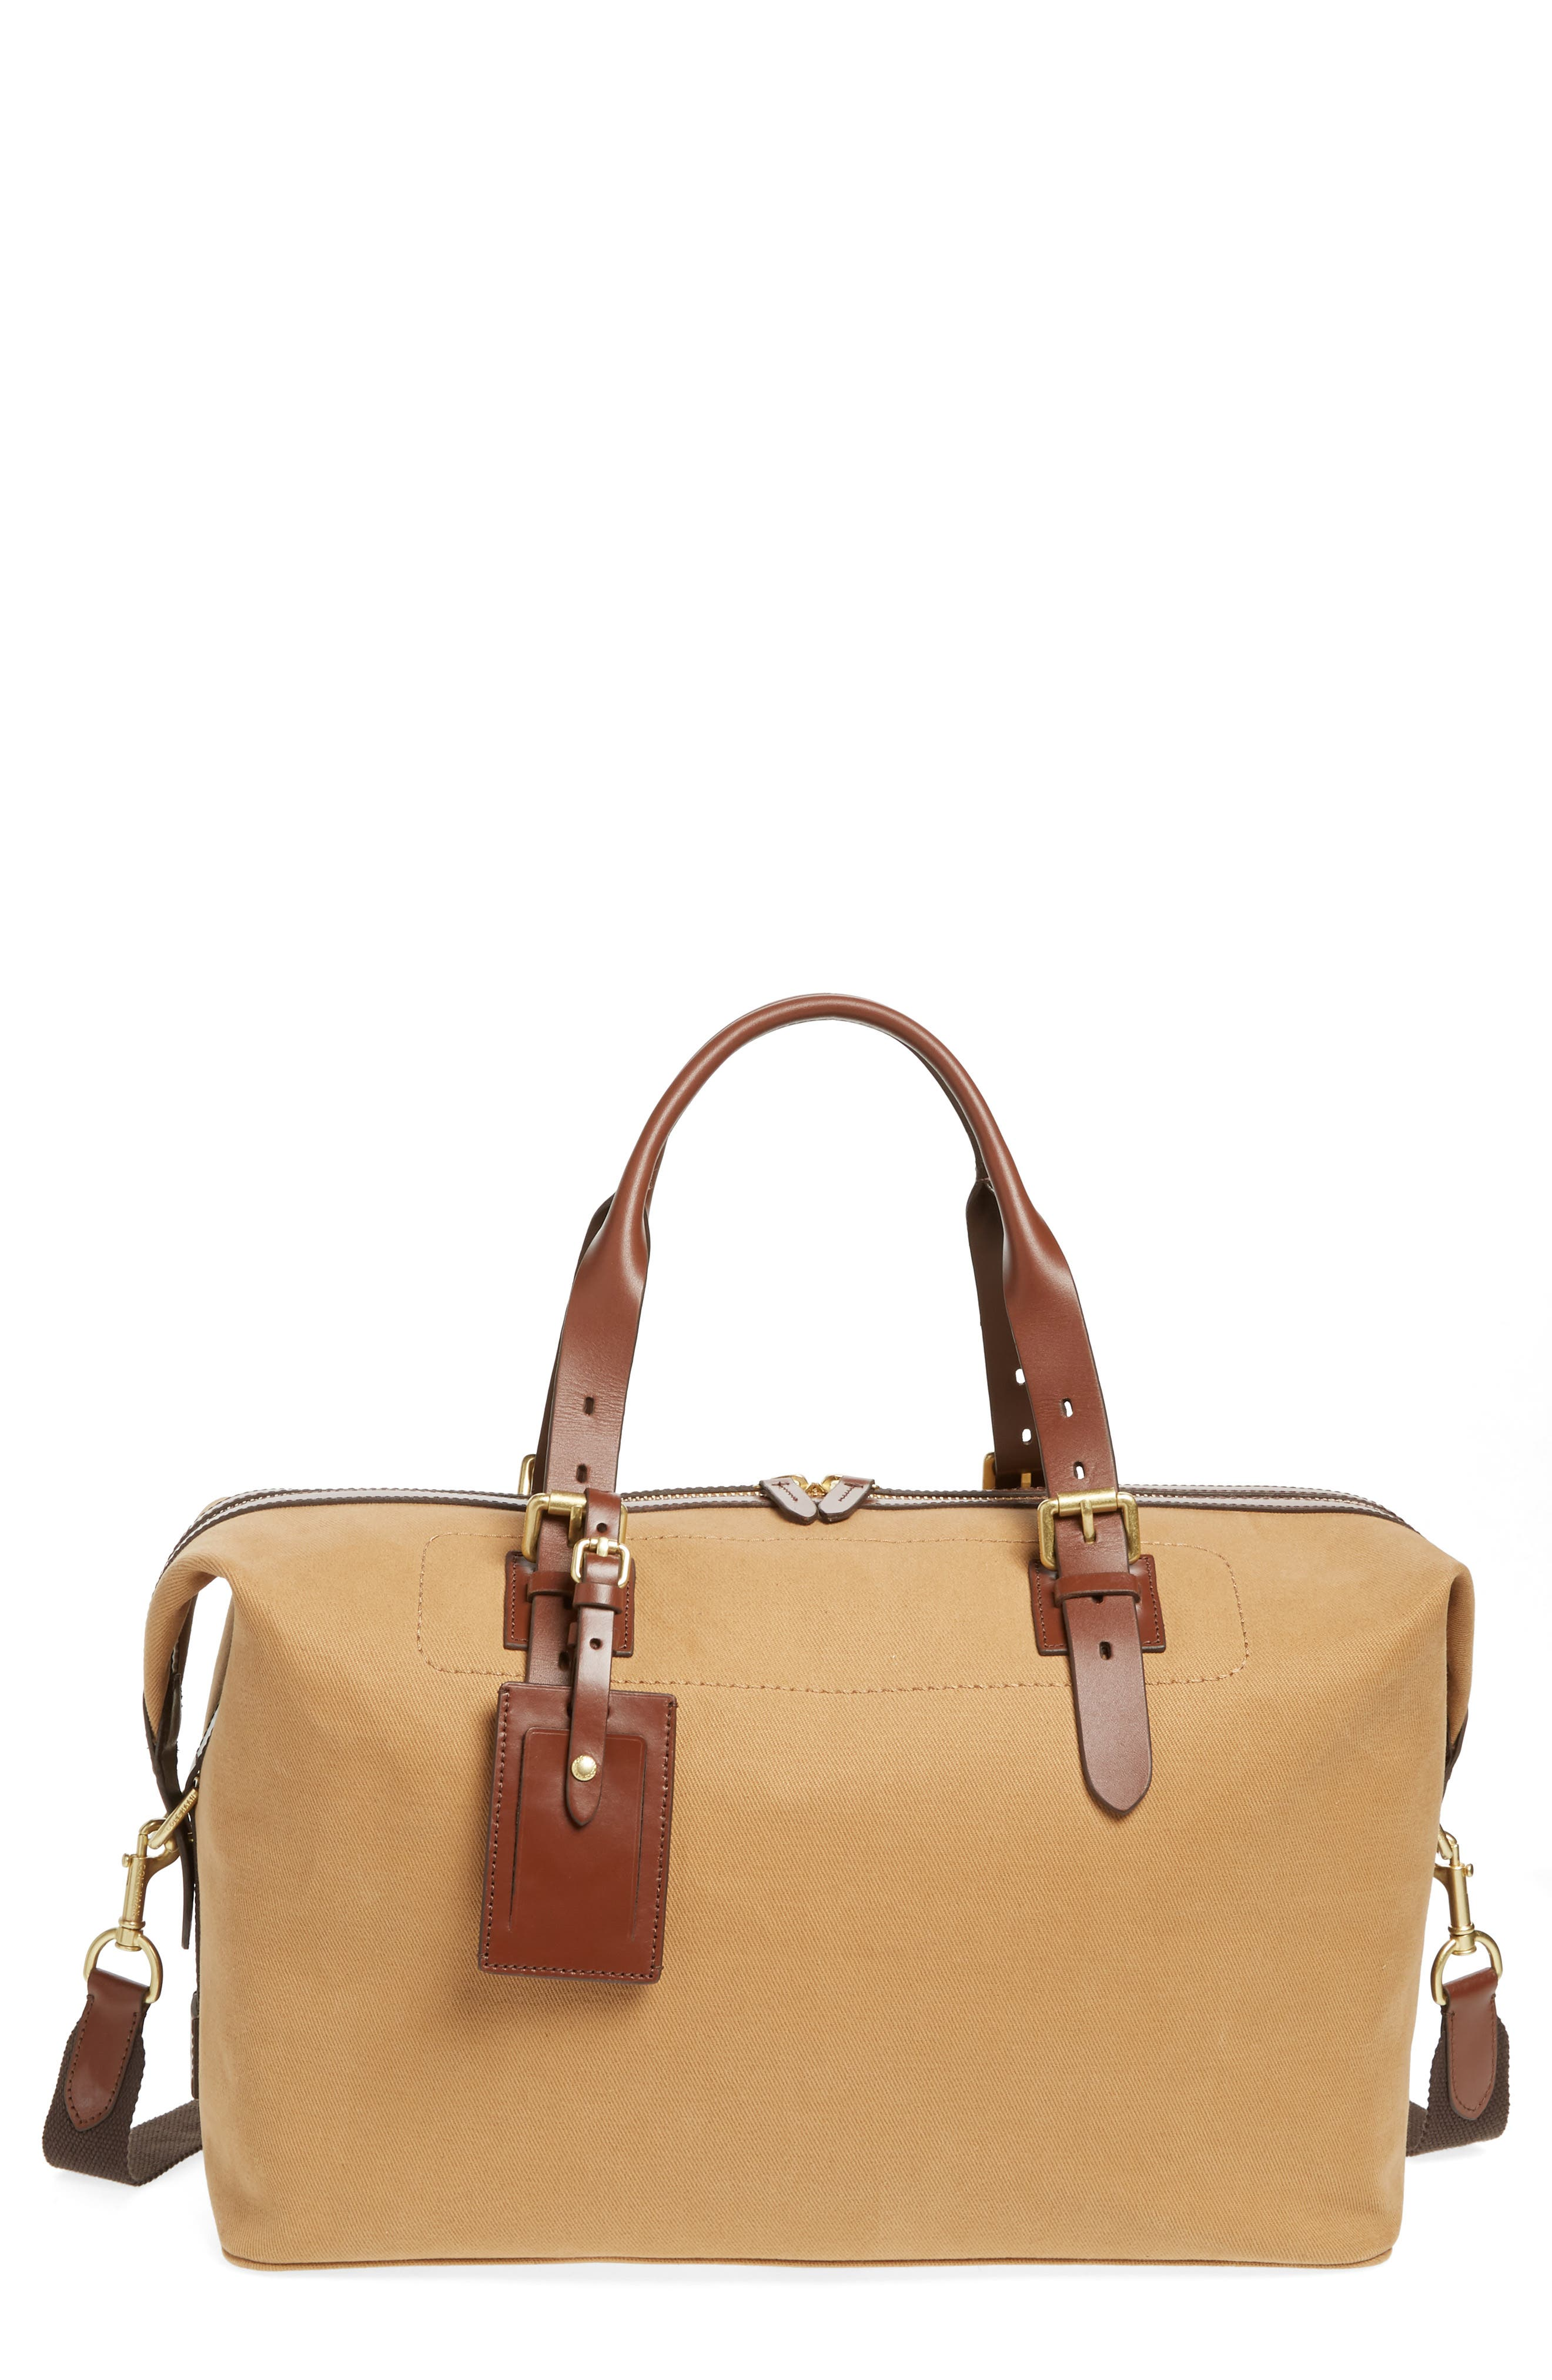 Canvas Duffel Bag,                         Main,                         color, ICED COFFEE